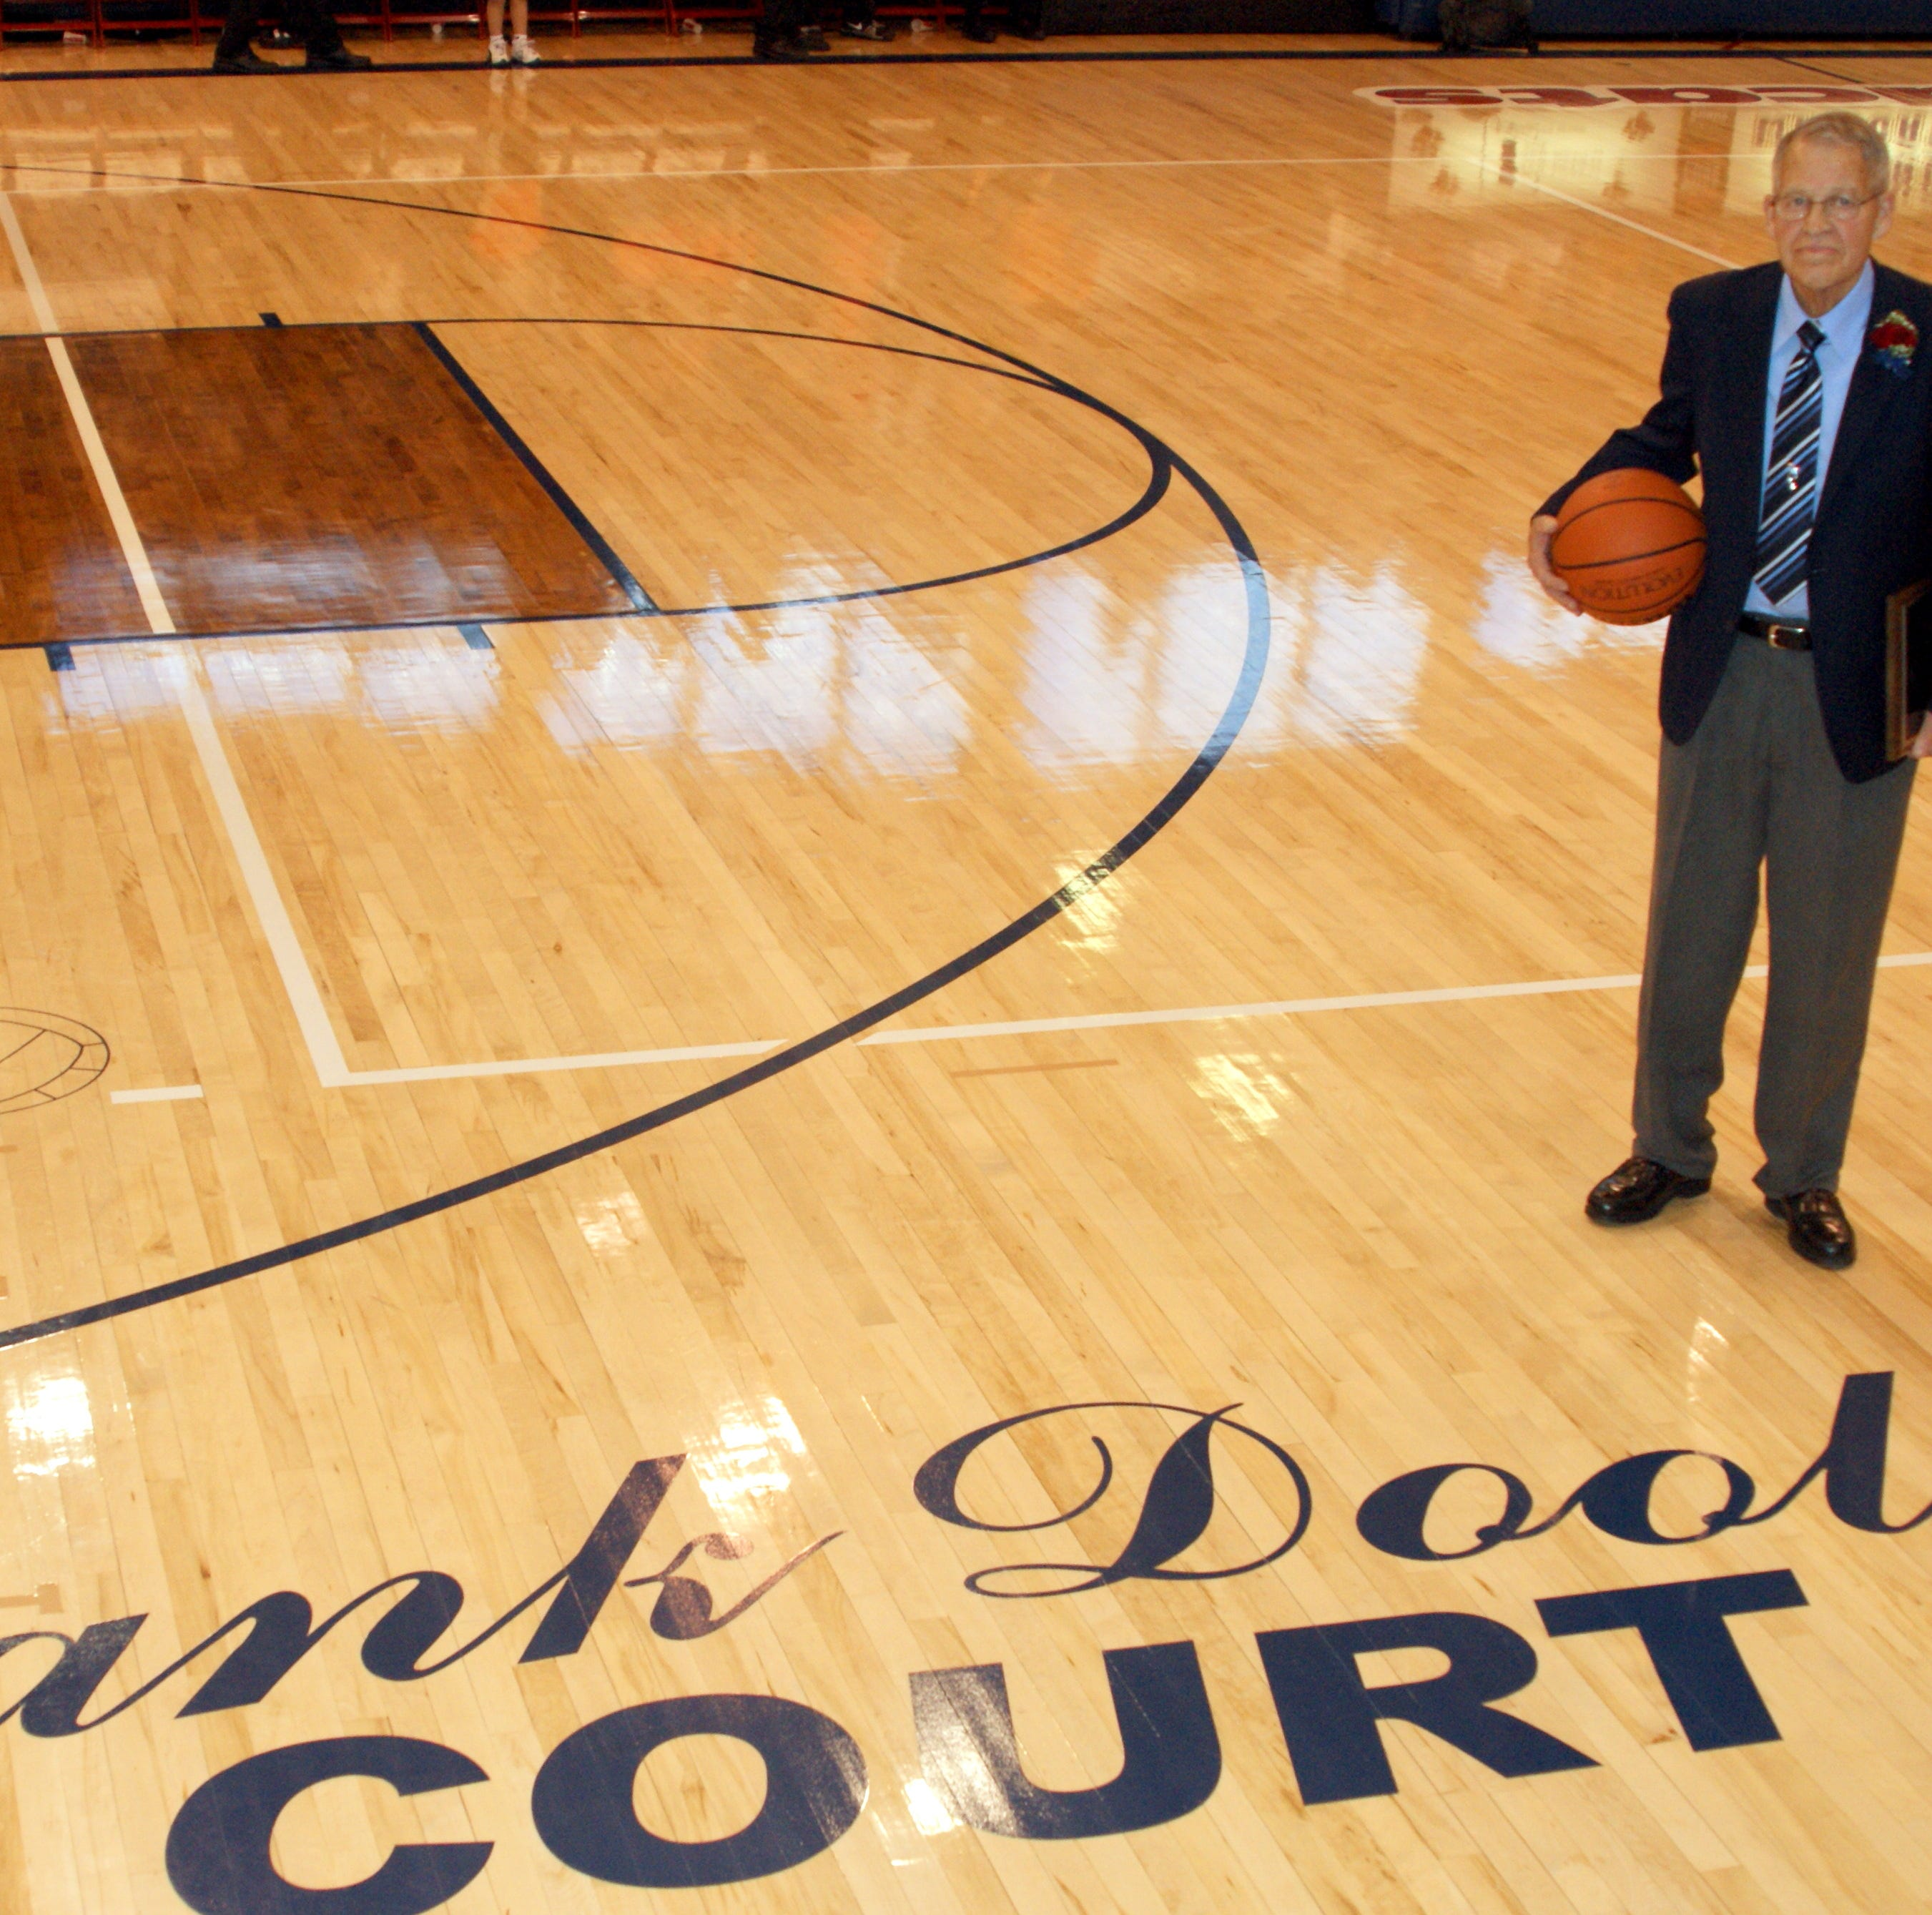 You can own a piece of the floor: Deming High to auction off famed Frank Dooley Court